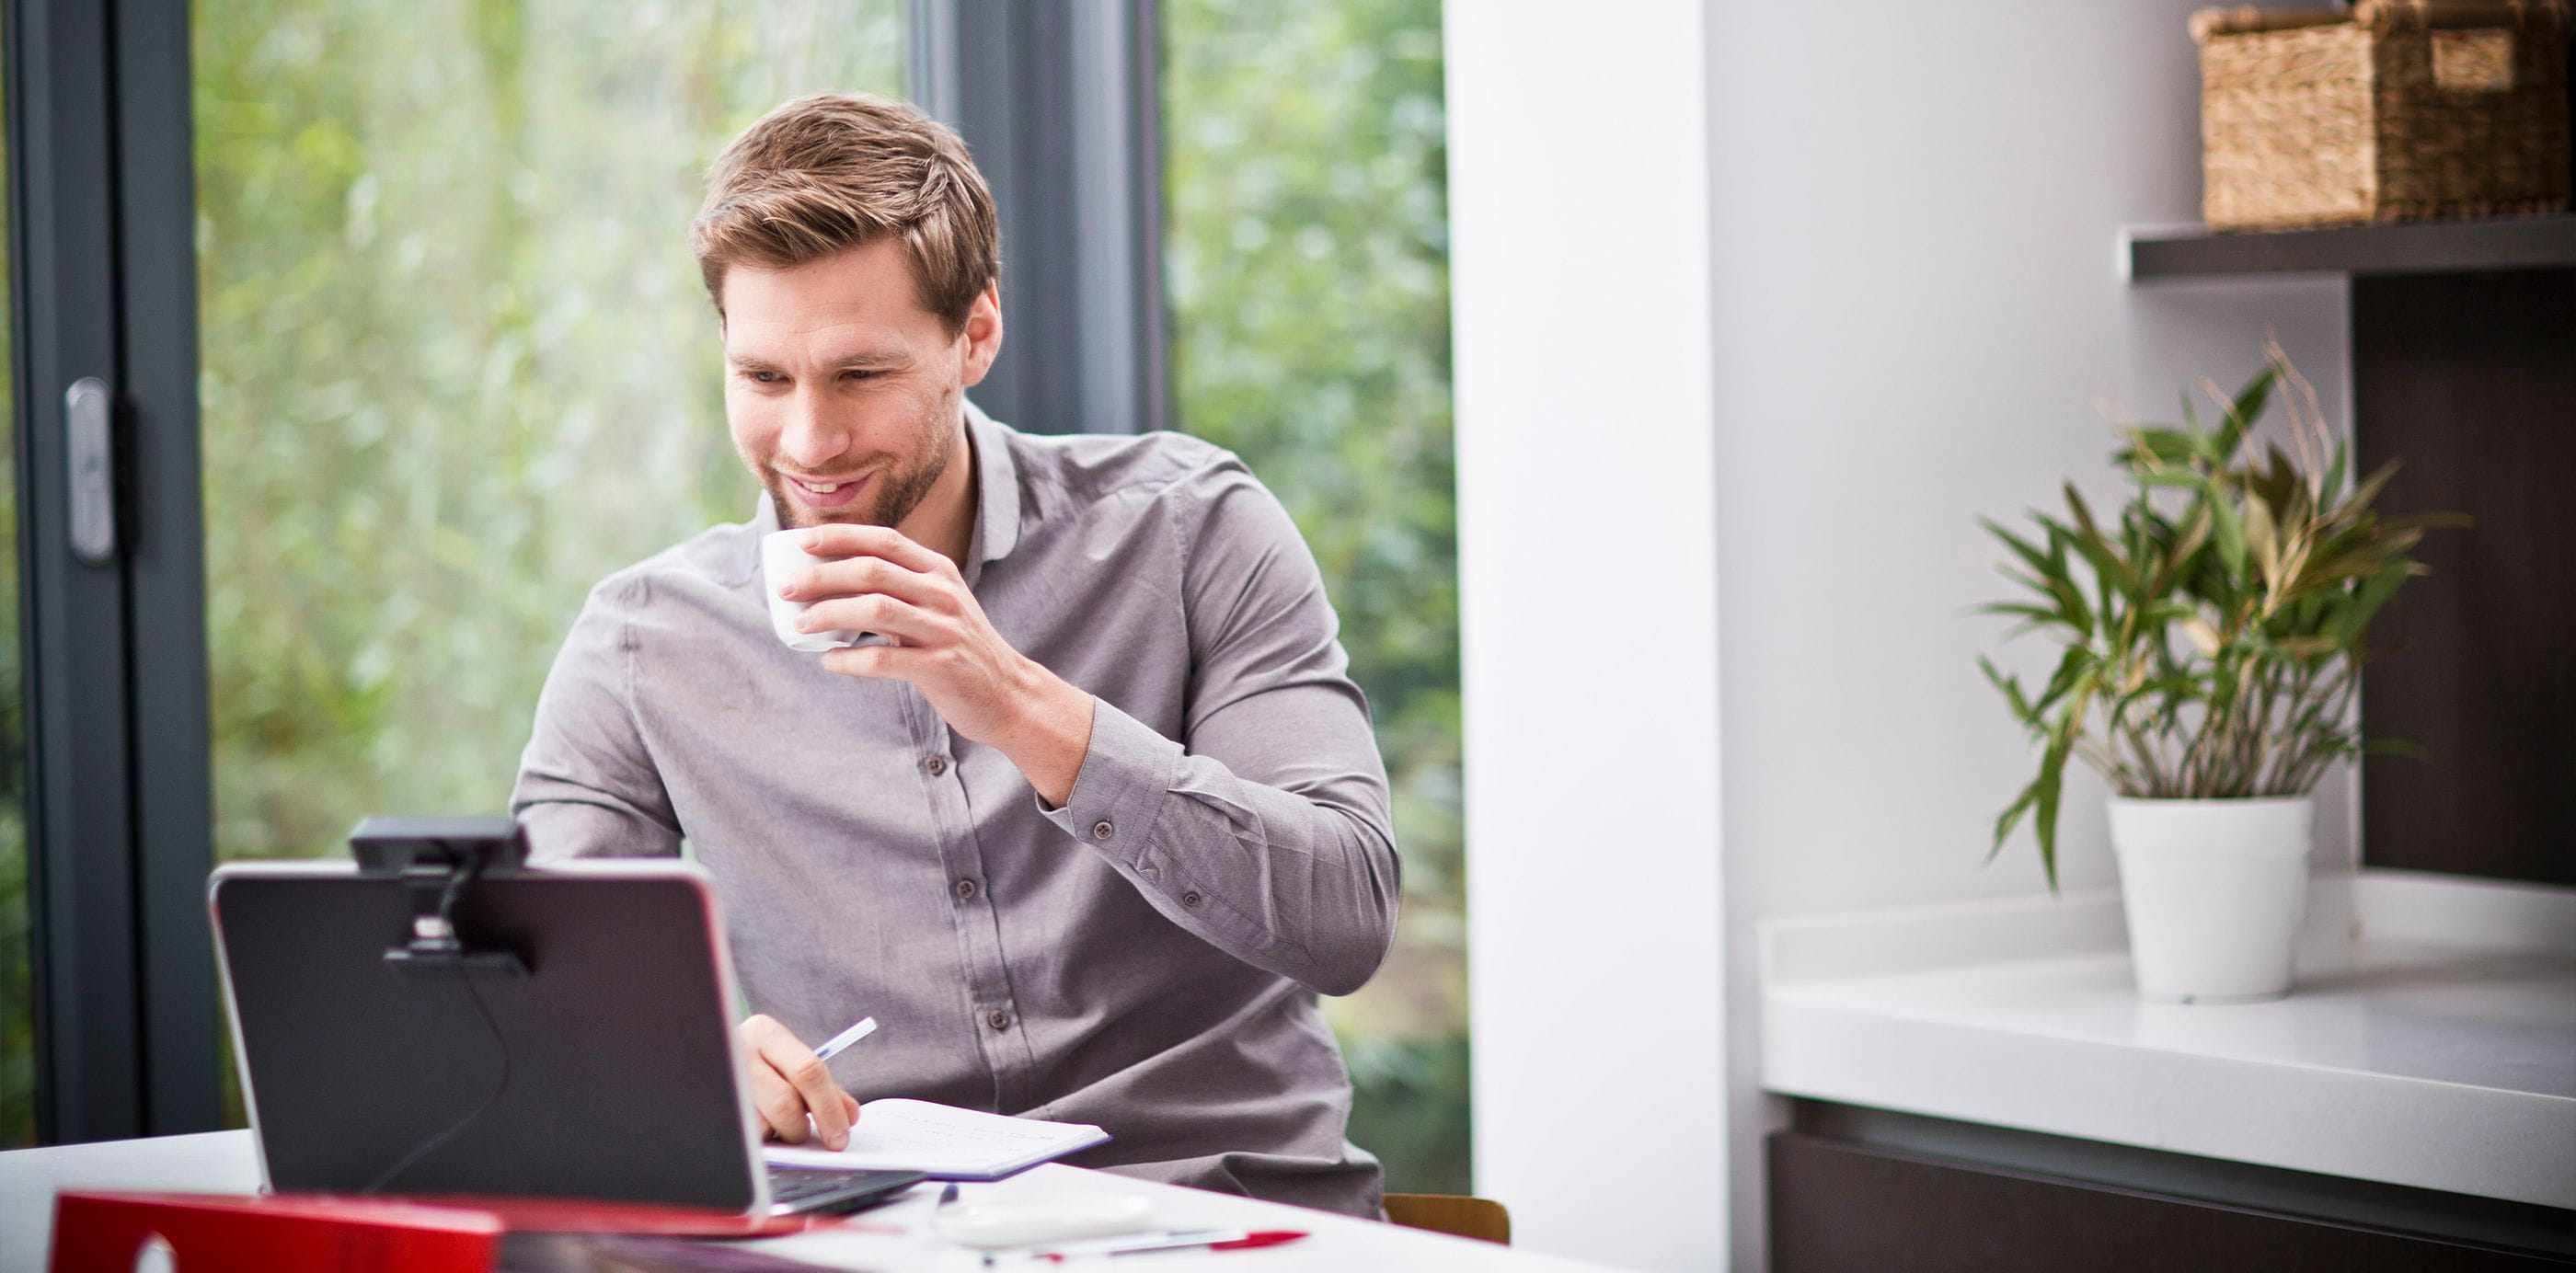 Brother OmniJoin man at home in web conference on laptop